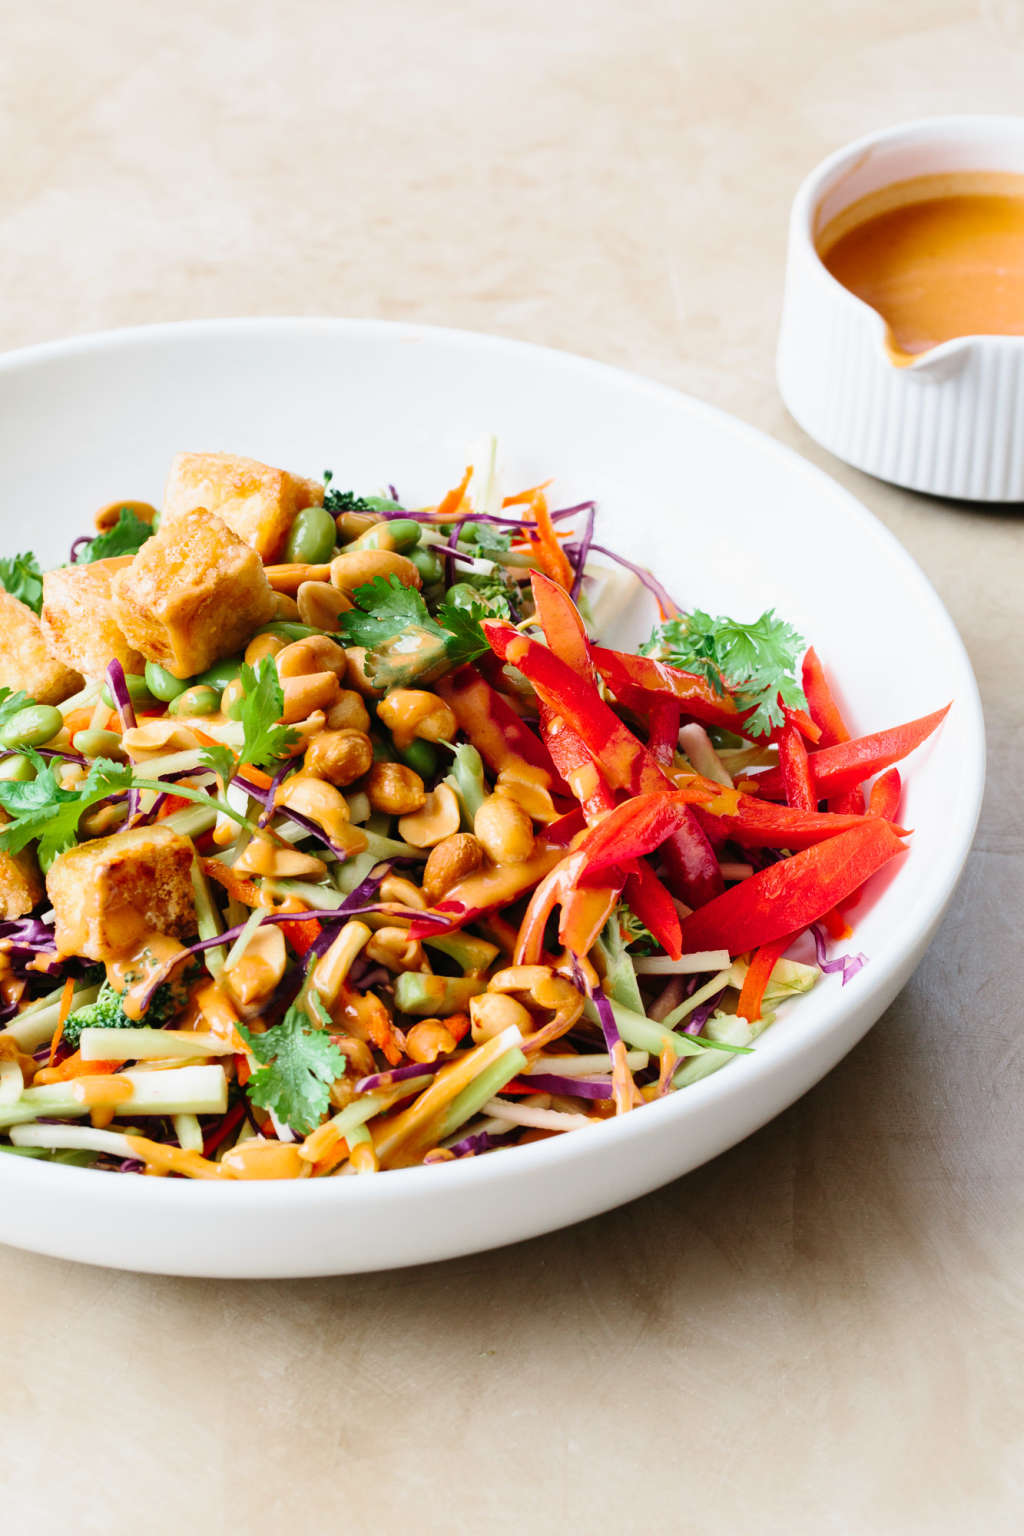 10 of Our Most Popular Tofu Recipes